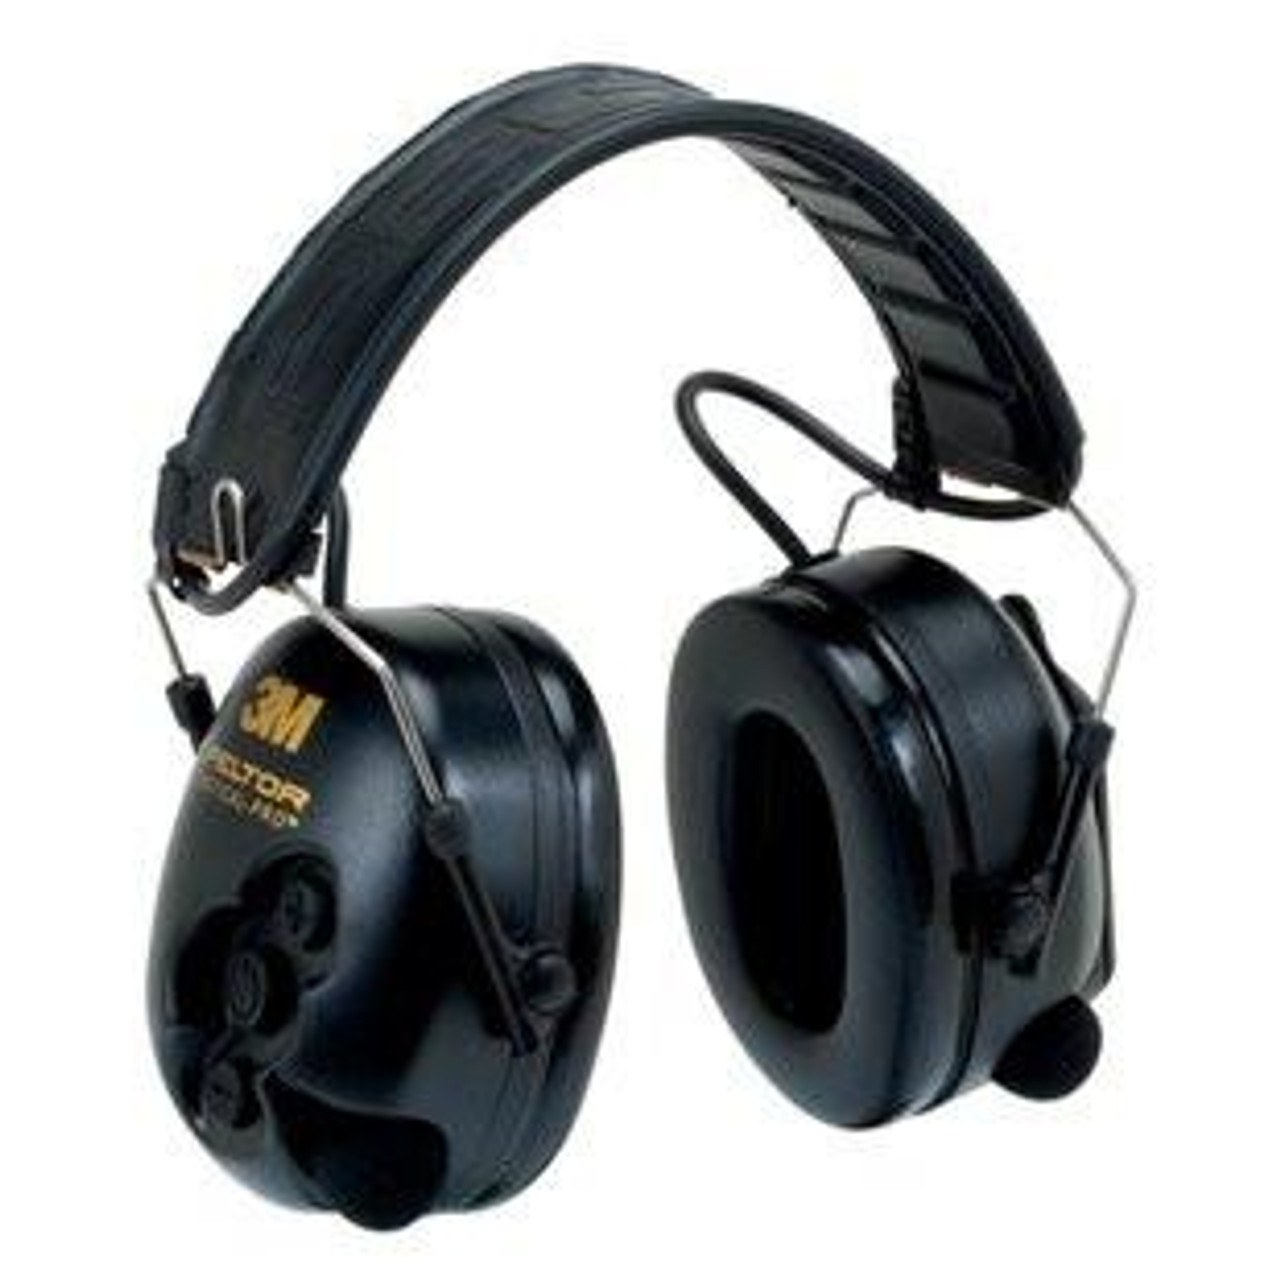 3M™ Peltor™ TacticalPro Communications Headset with Headband